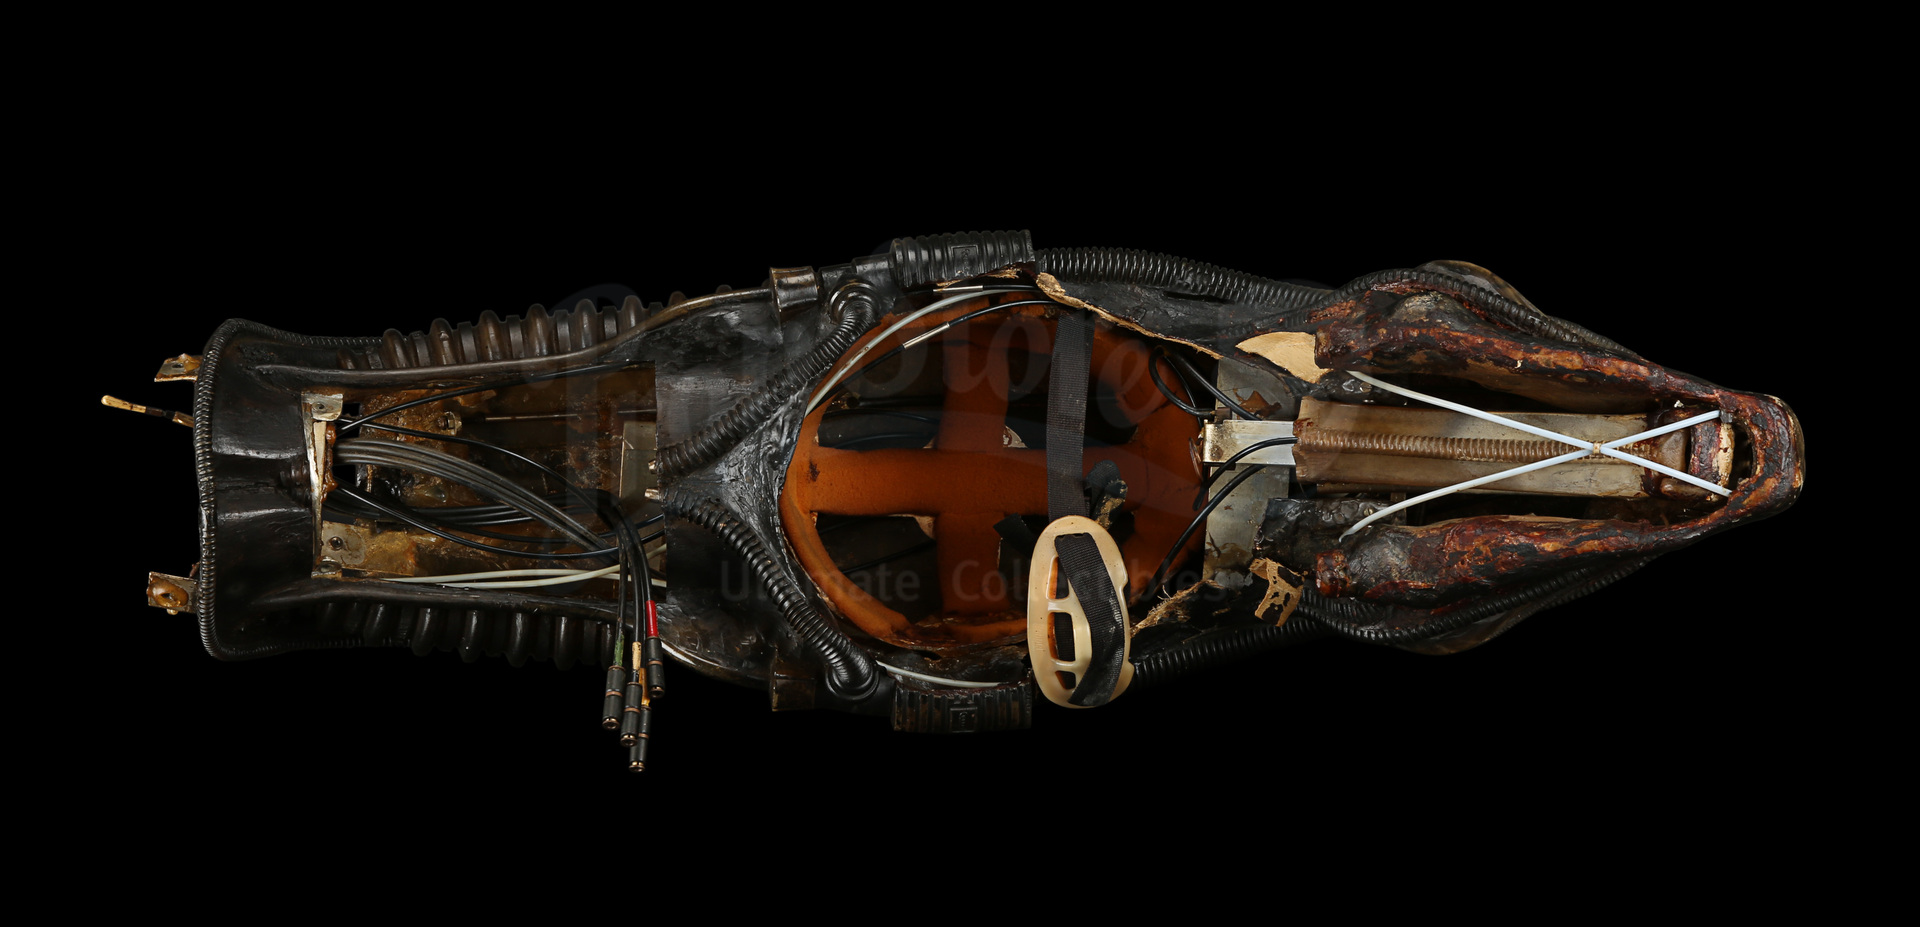 ALIEN (1979) - H.R. Giger-designed Special Effects Mechanical Alien Head - Image 29 of 34